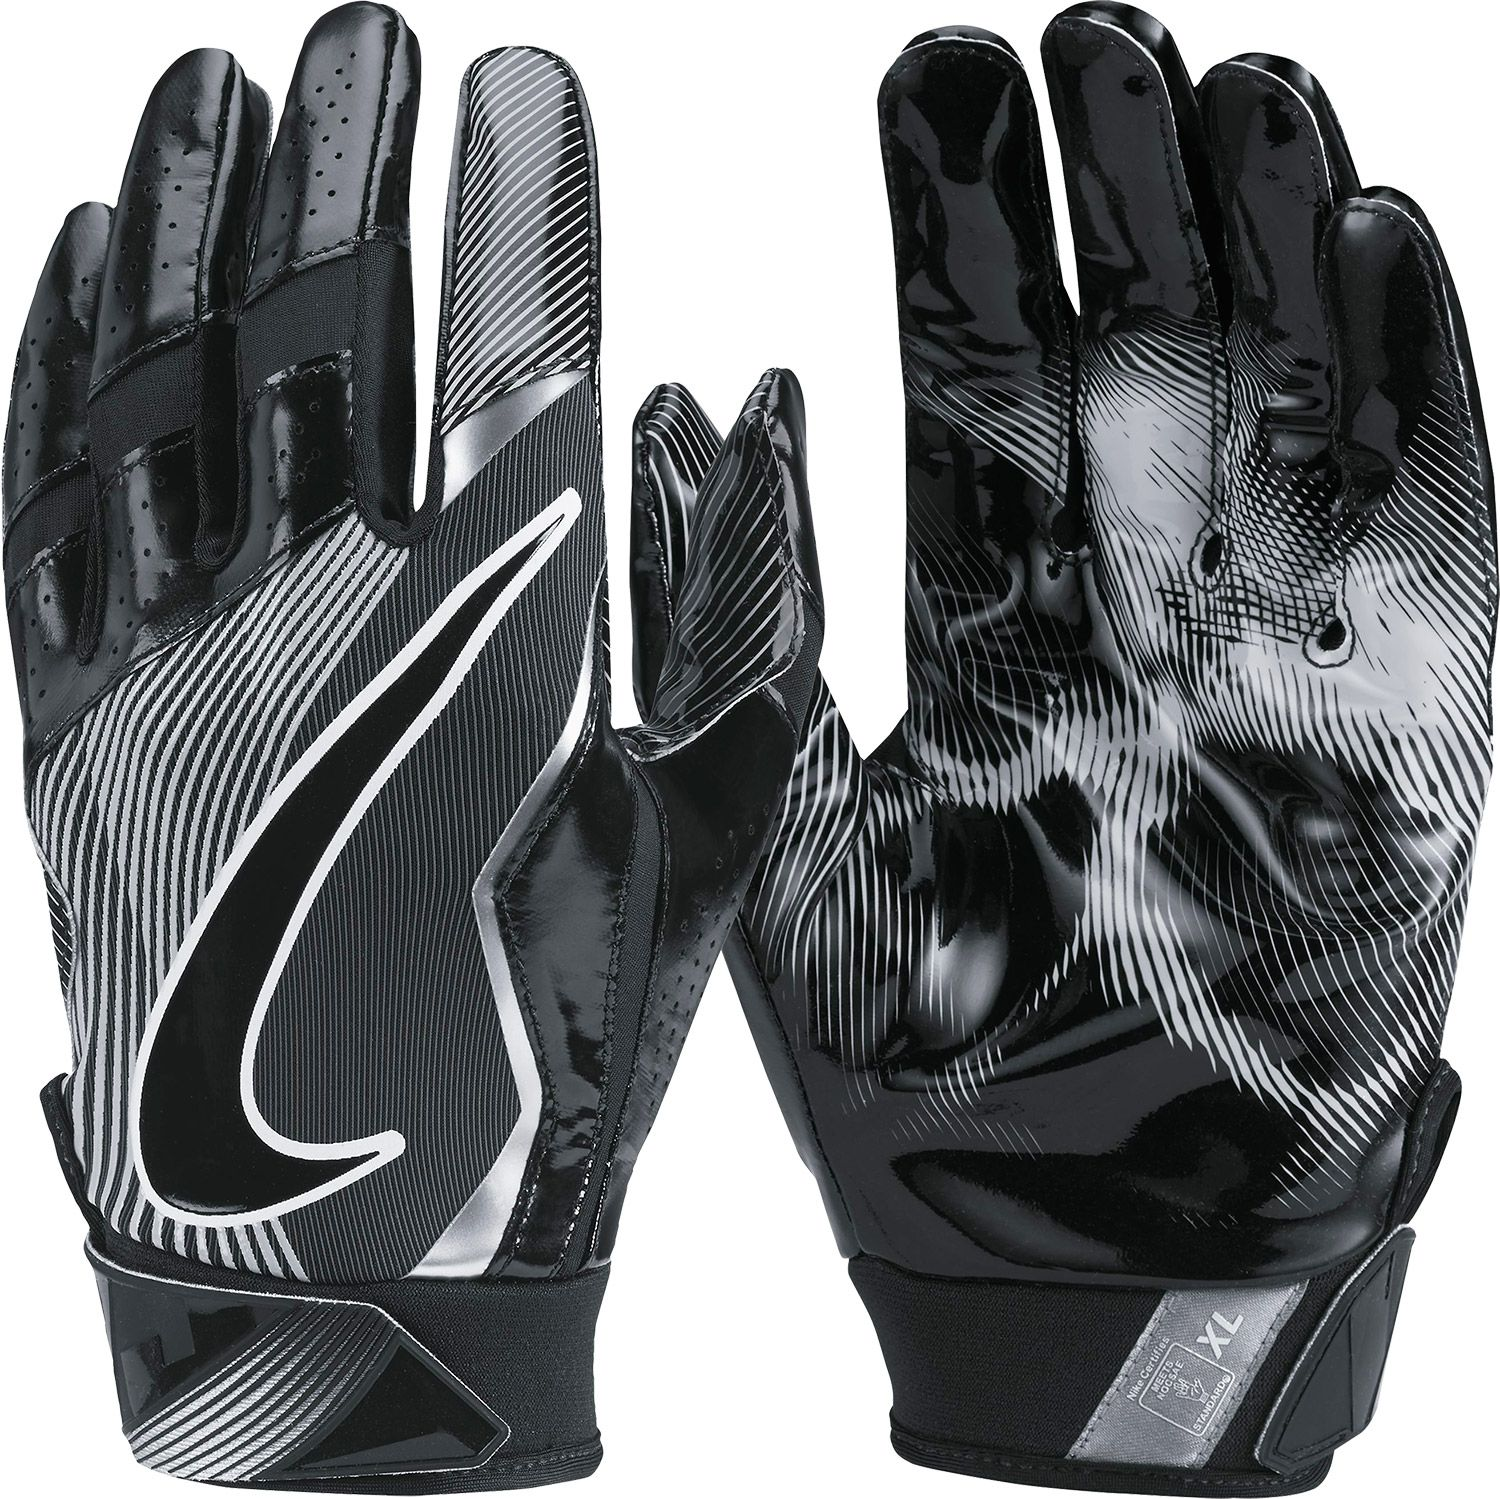 Nike Football Gloves: Best Football Gloves Reviews Of 2019 At TopProducts.com